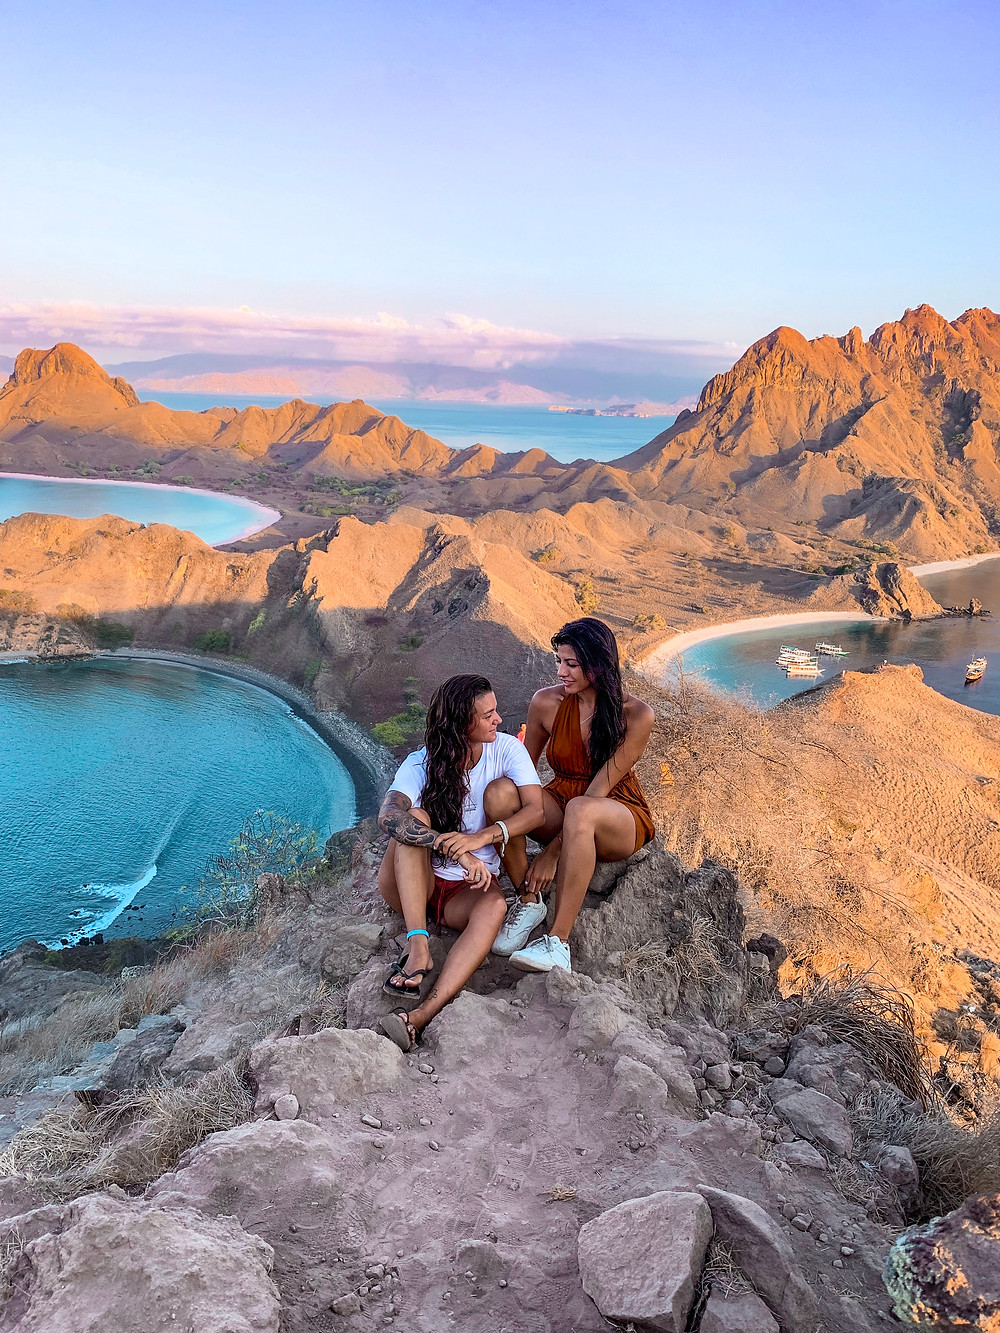 Padar Island. A beautiful island resting between Komodo and Rinca islands. At the top of the hike you can see three colored beaches.